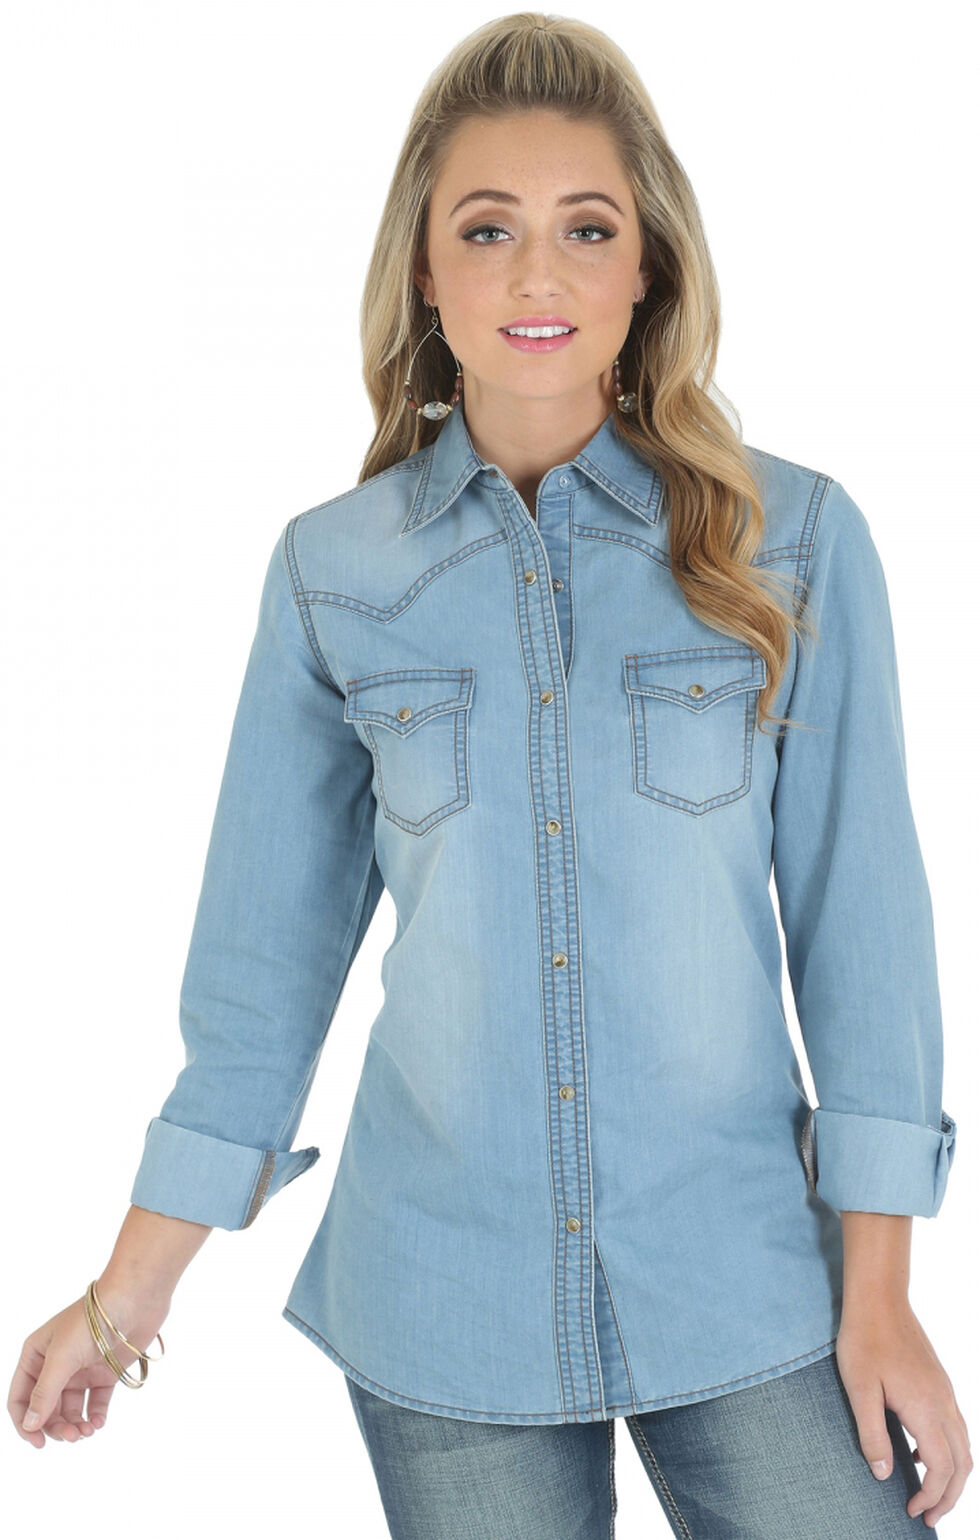 Wrangler Women's Premium Long Sleeve Denim Shirt, Stonewash, hi-res